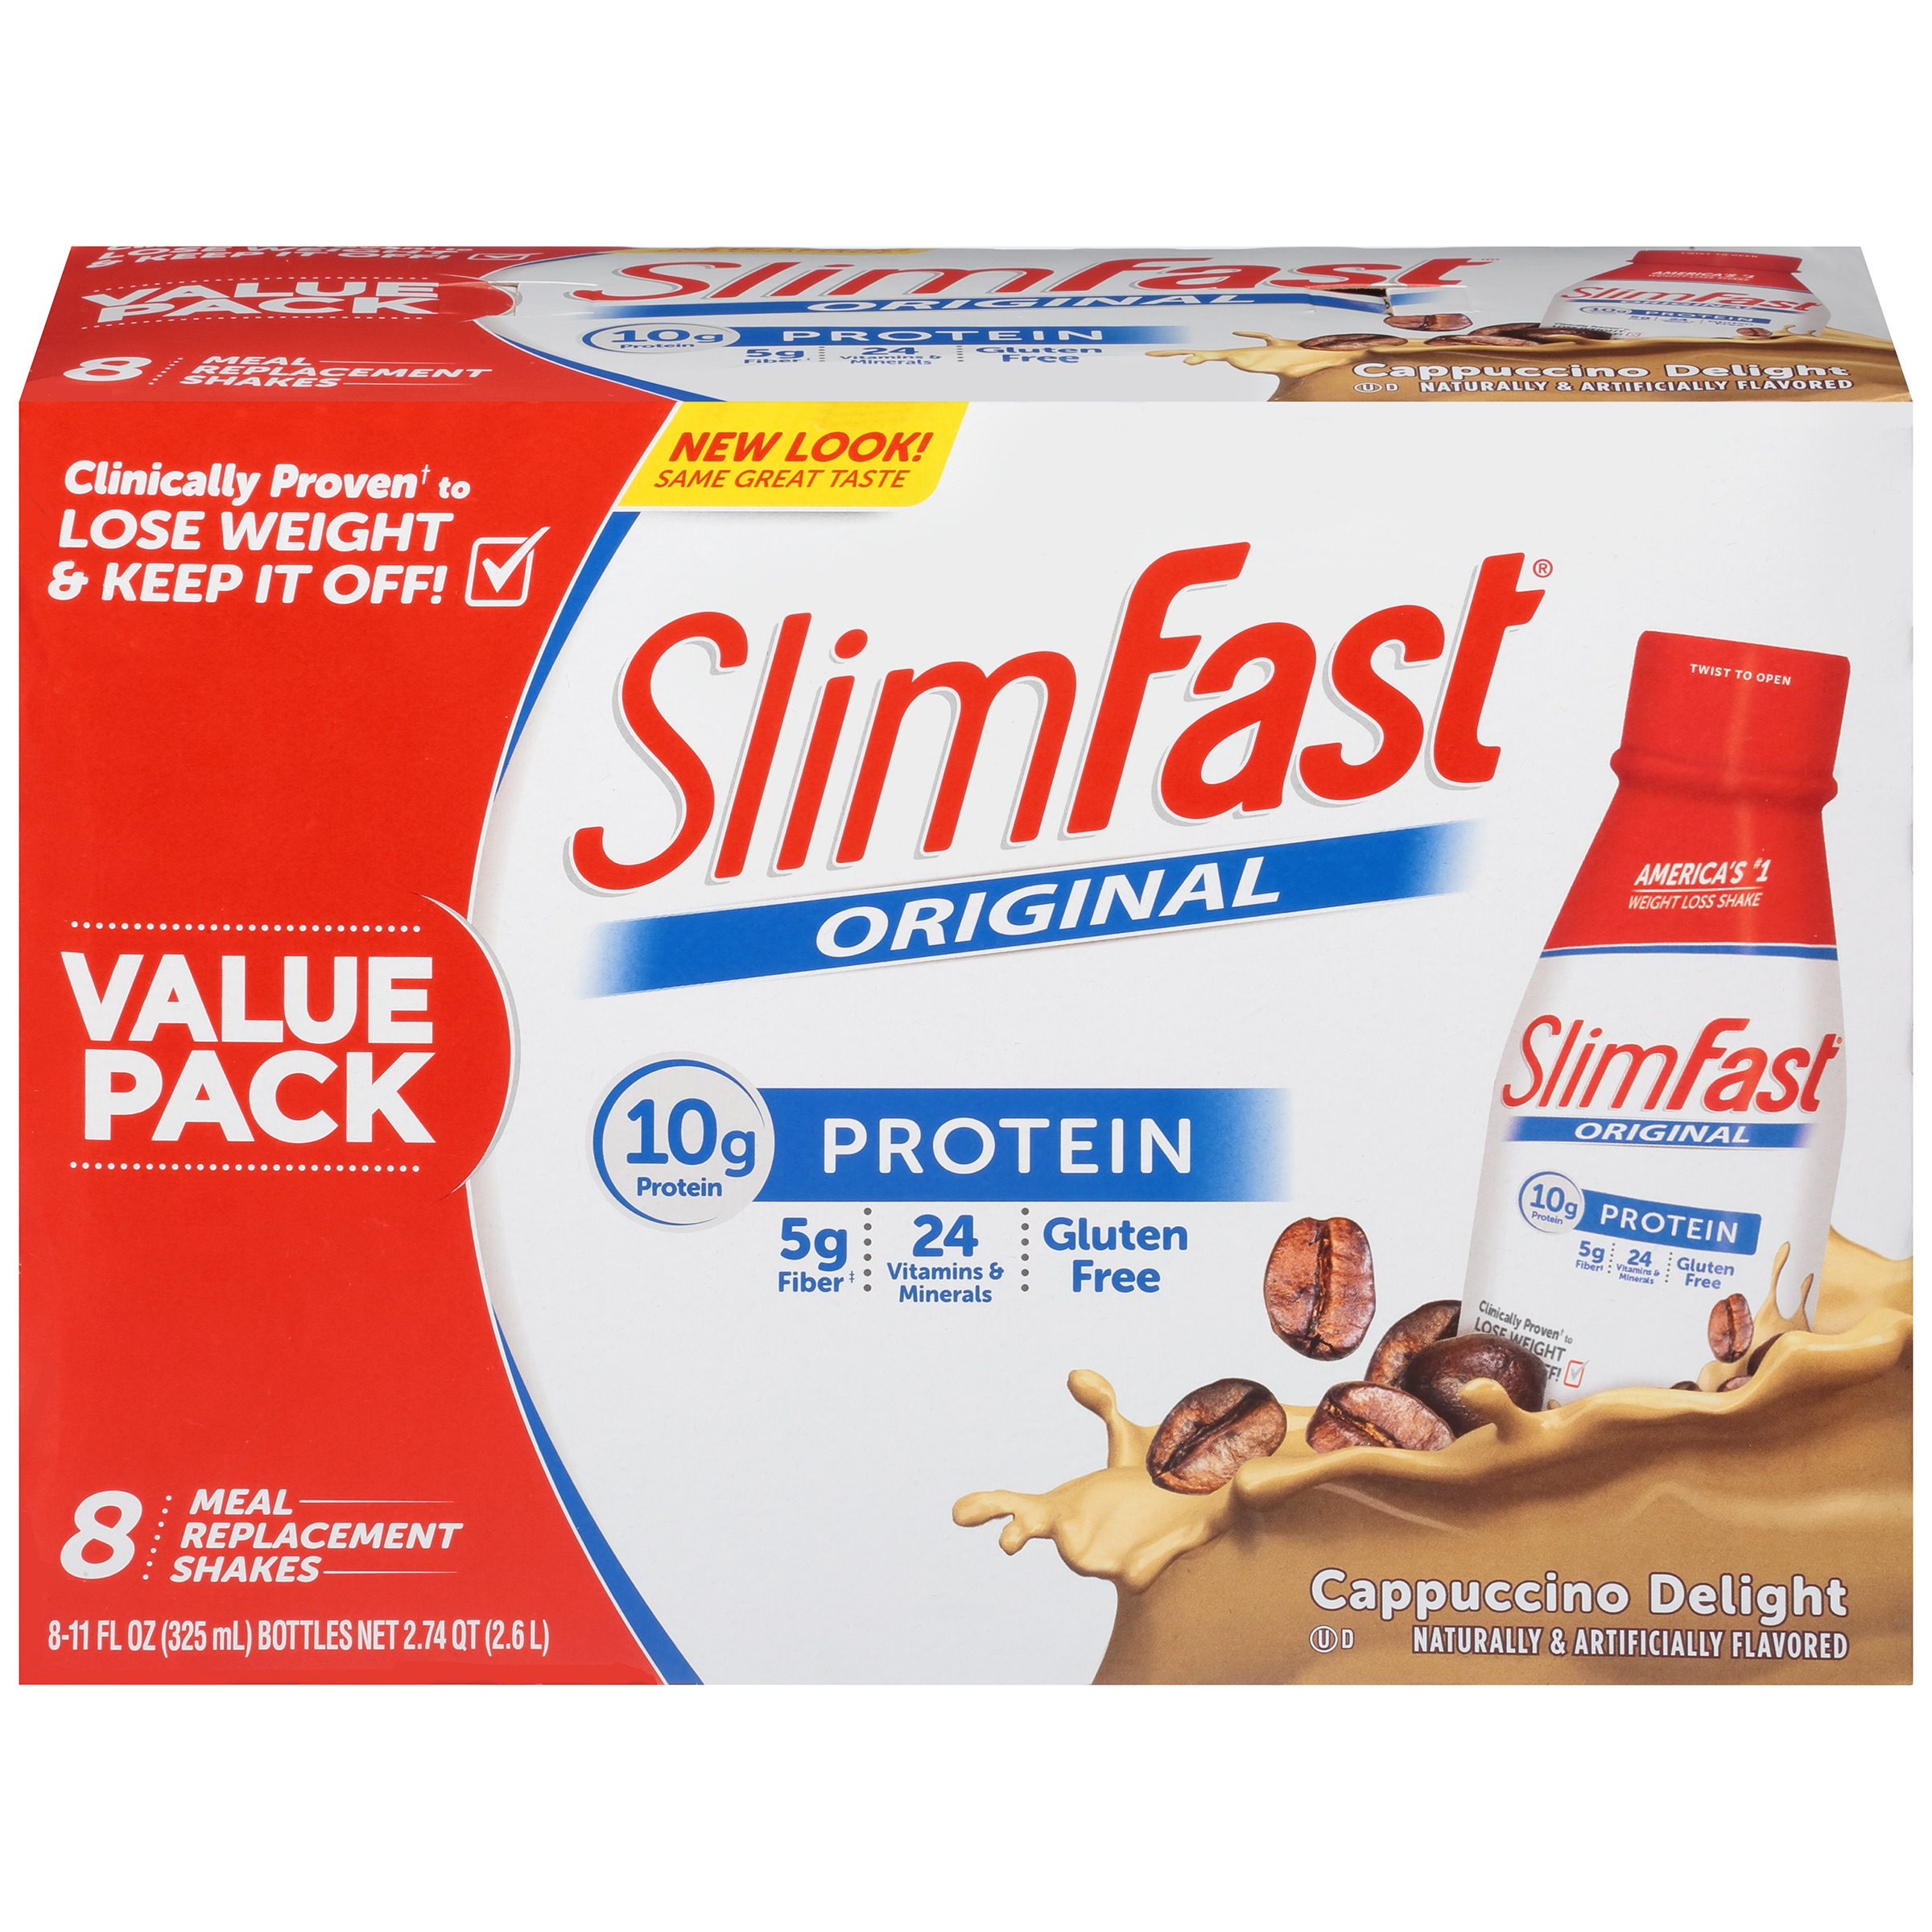 SlimFast® Original Cappuccino Delight Meal Replacement Shakes 8-11 fl. oz. Bottles